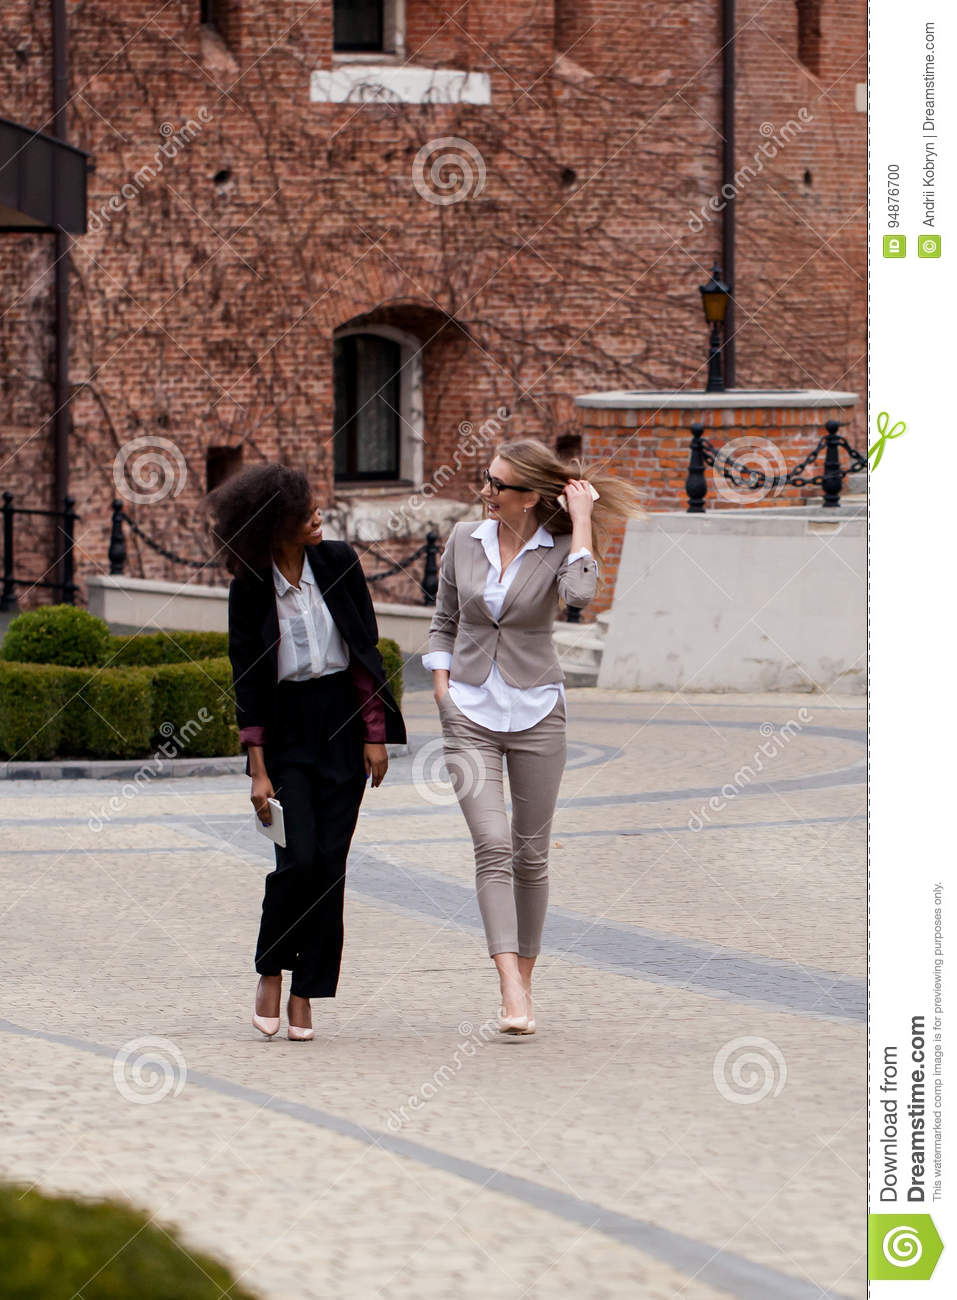 Two young and attractive businesswoman walking and having conversation. One woman is black with curly hair.